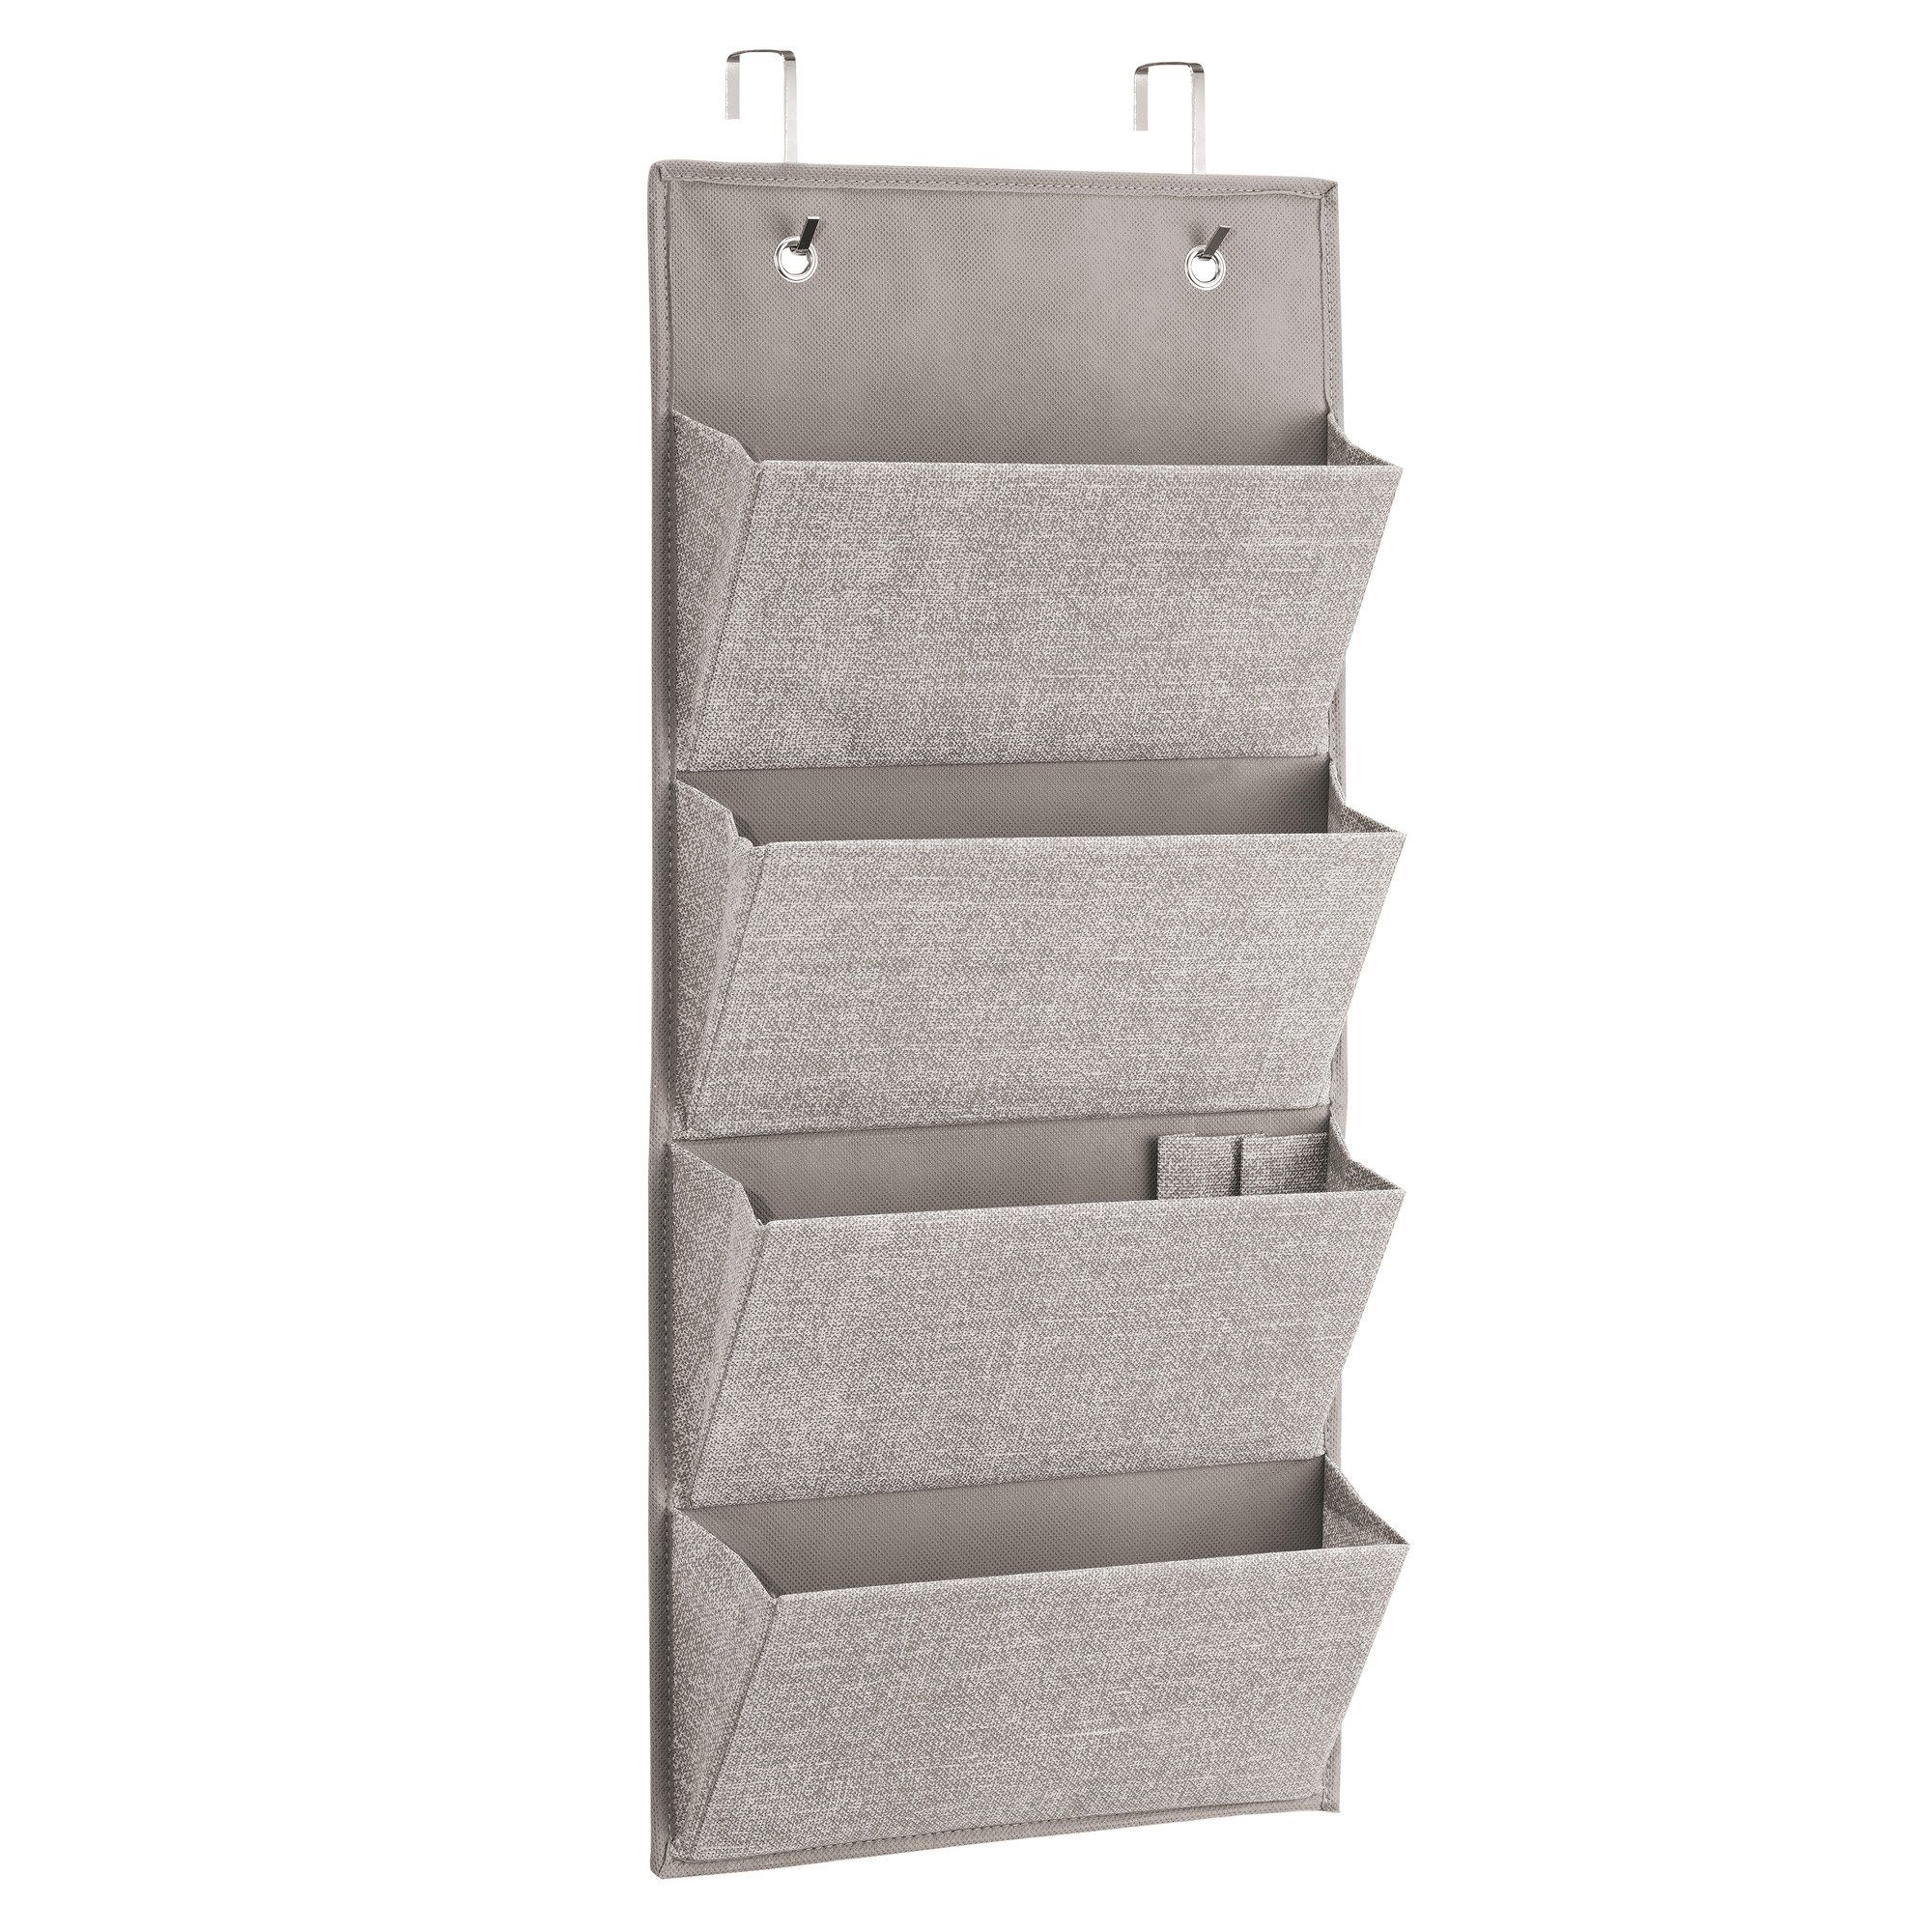 Mdesign Soft Fabric Wall Mount Over Door Hanging Storage Organizer 4 Large Pockets For Chil Hanging Closet Storage Storage Closet Organization Nursery Storage